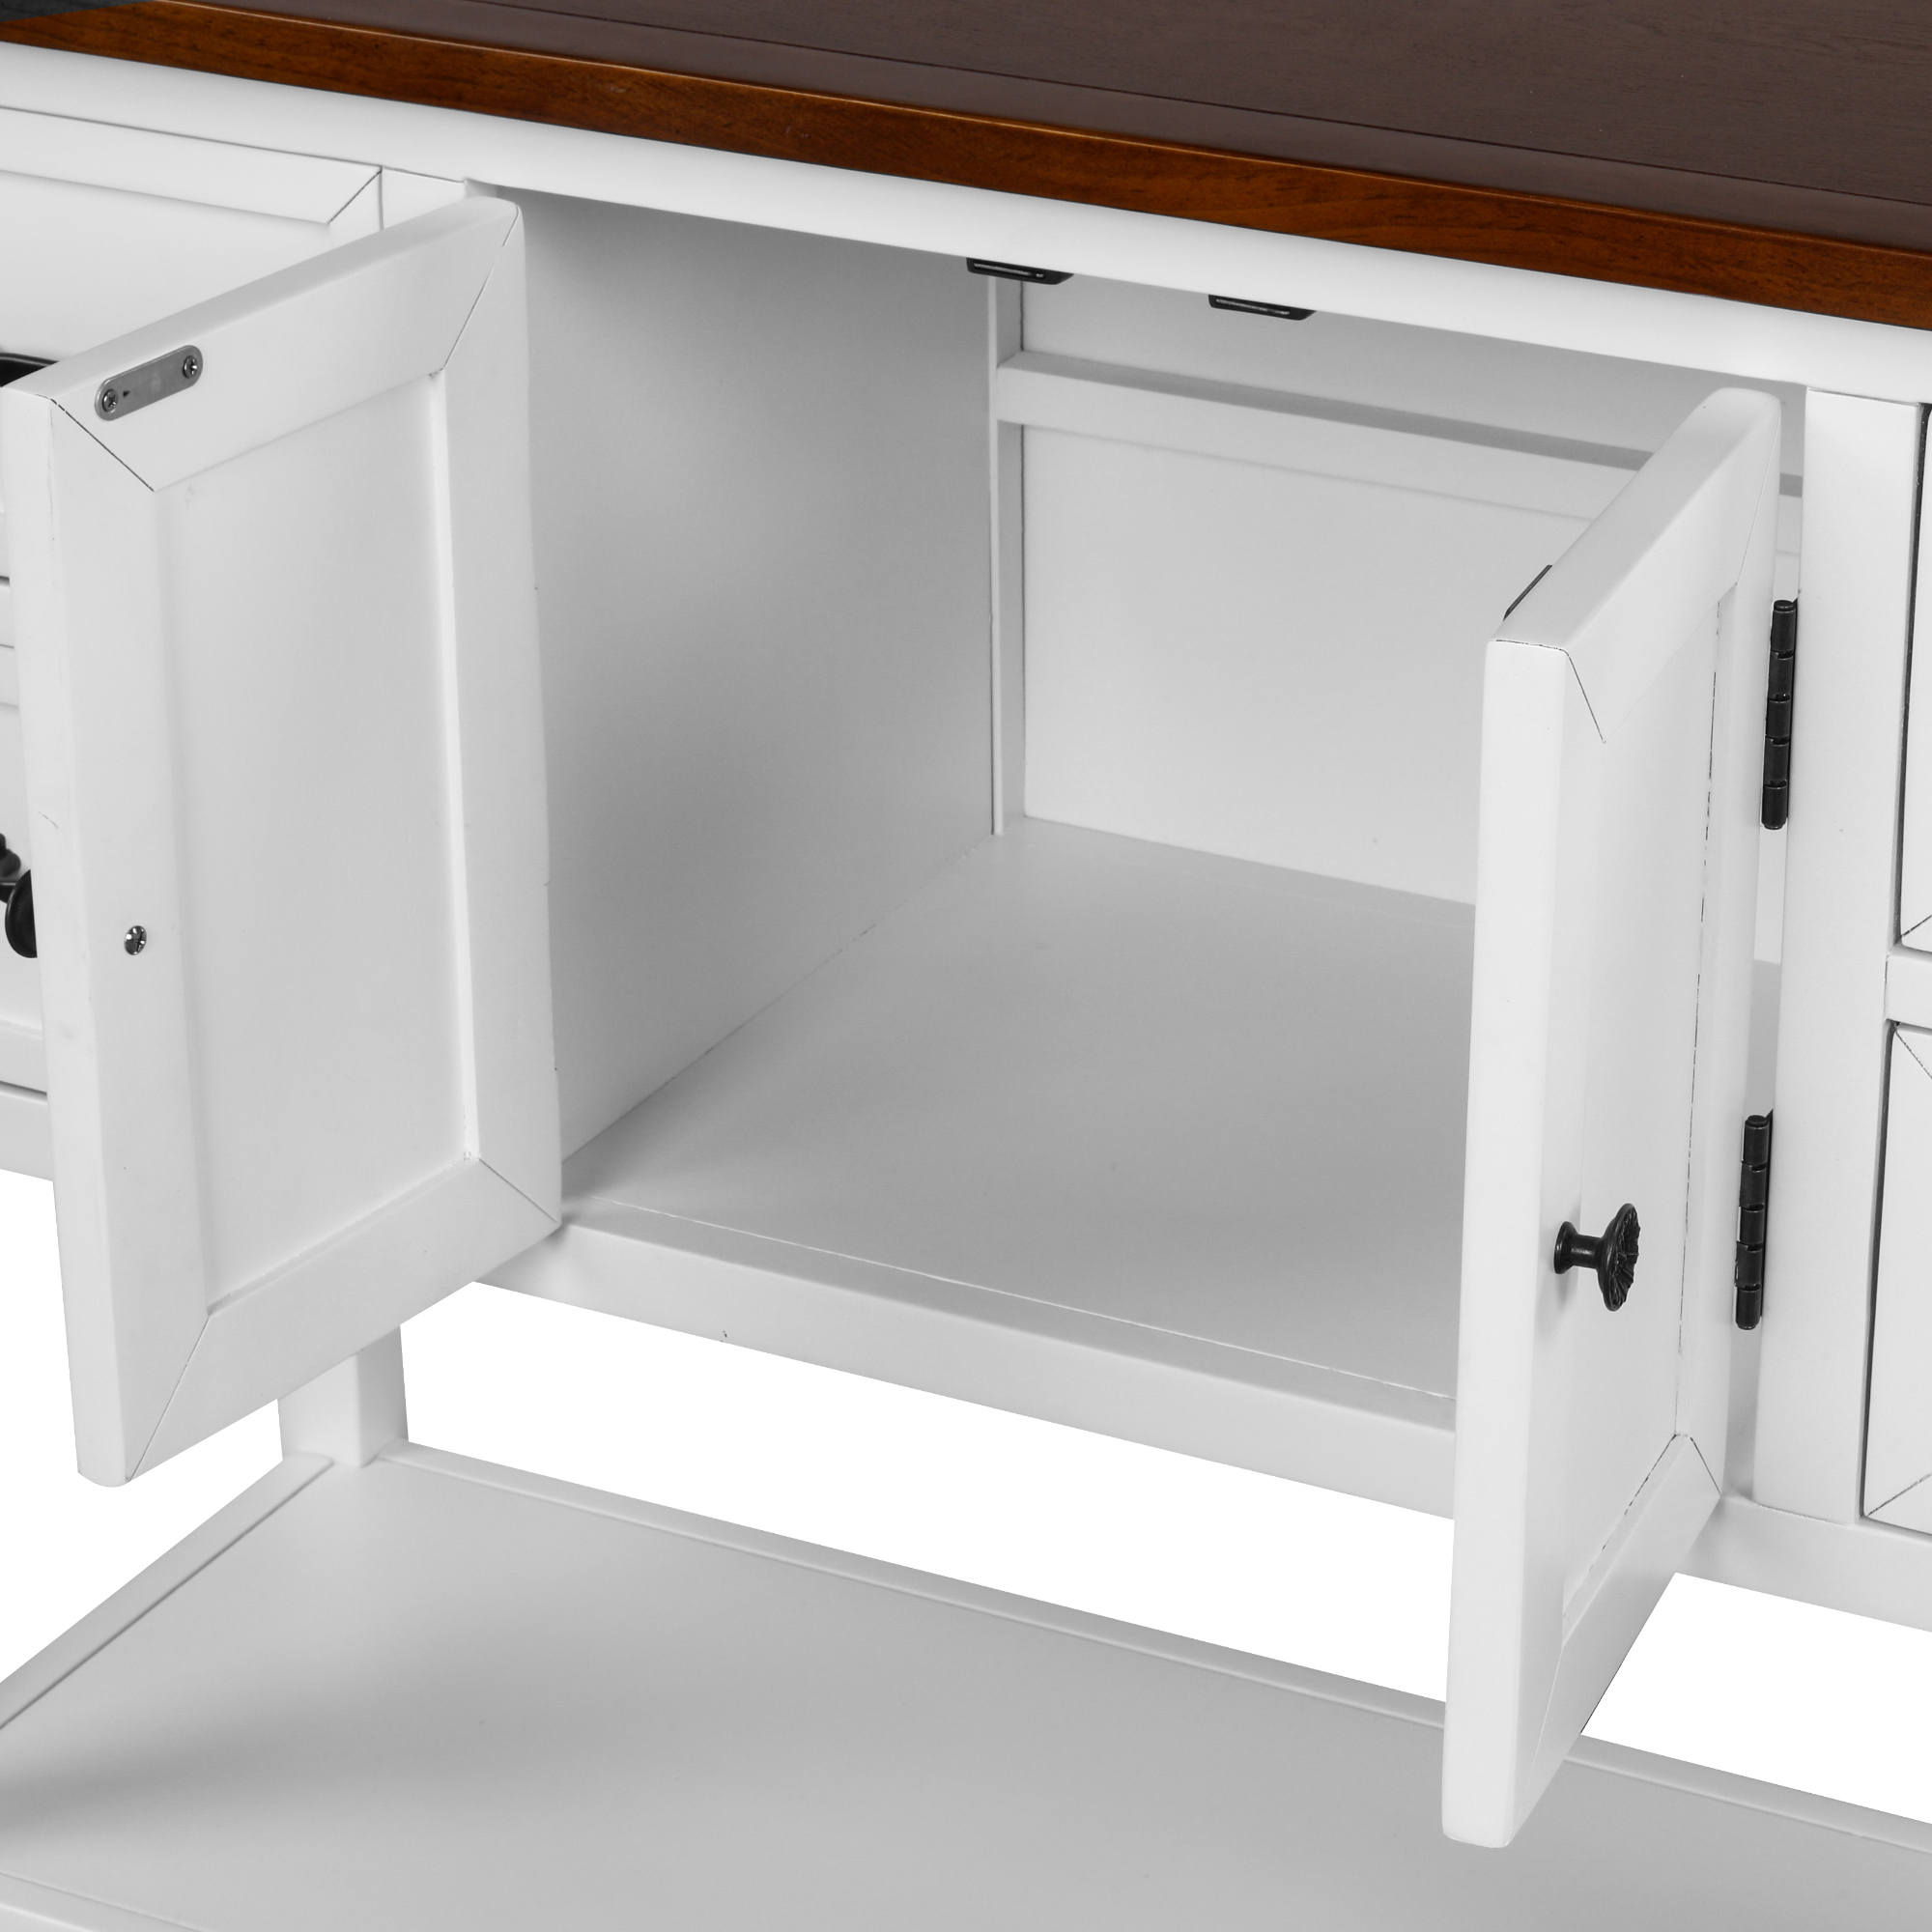 43'' Modern Console Table  Sofa Table For Living Room With 4 Drawers, 1 Cabinet And 1 Shelf